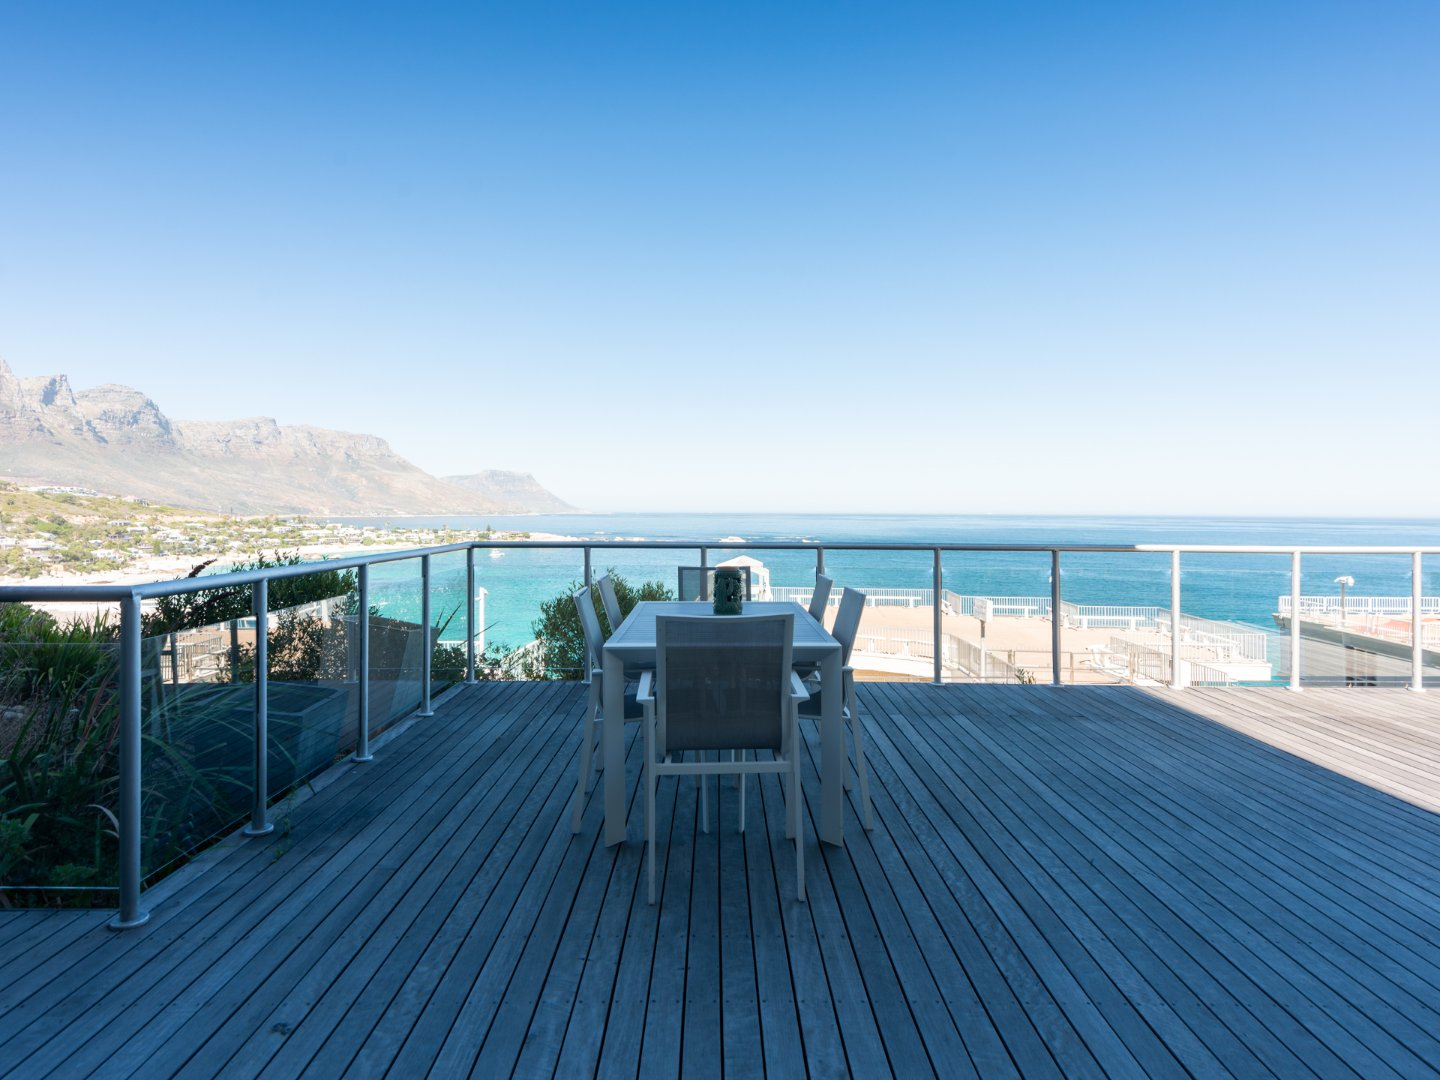 2 Bedroom Apartment with Magnificent Deck For Sale in Clifton